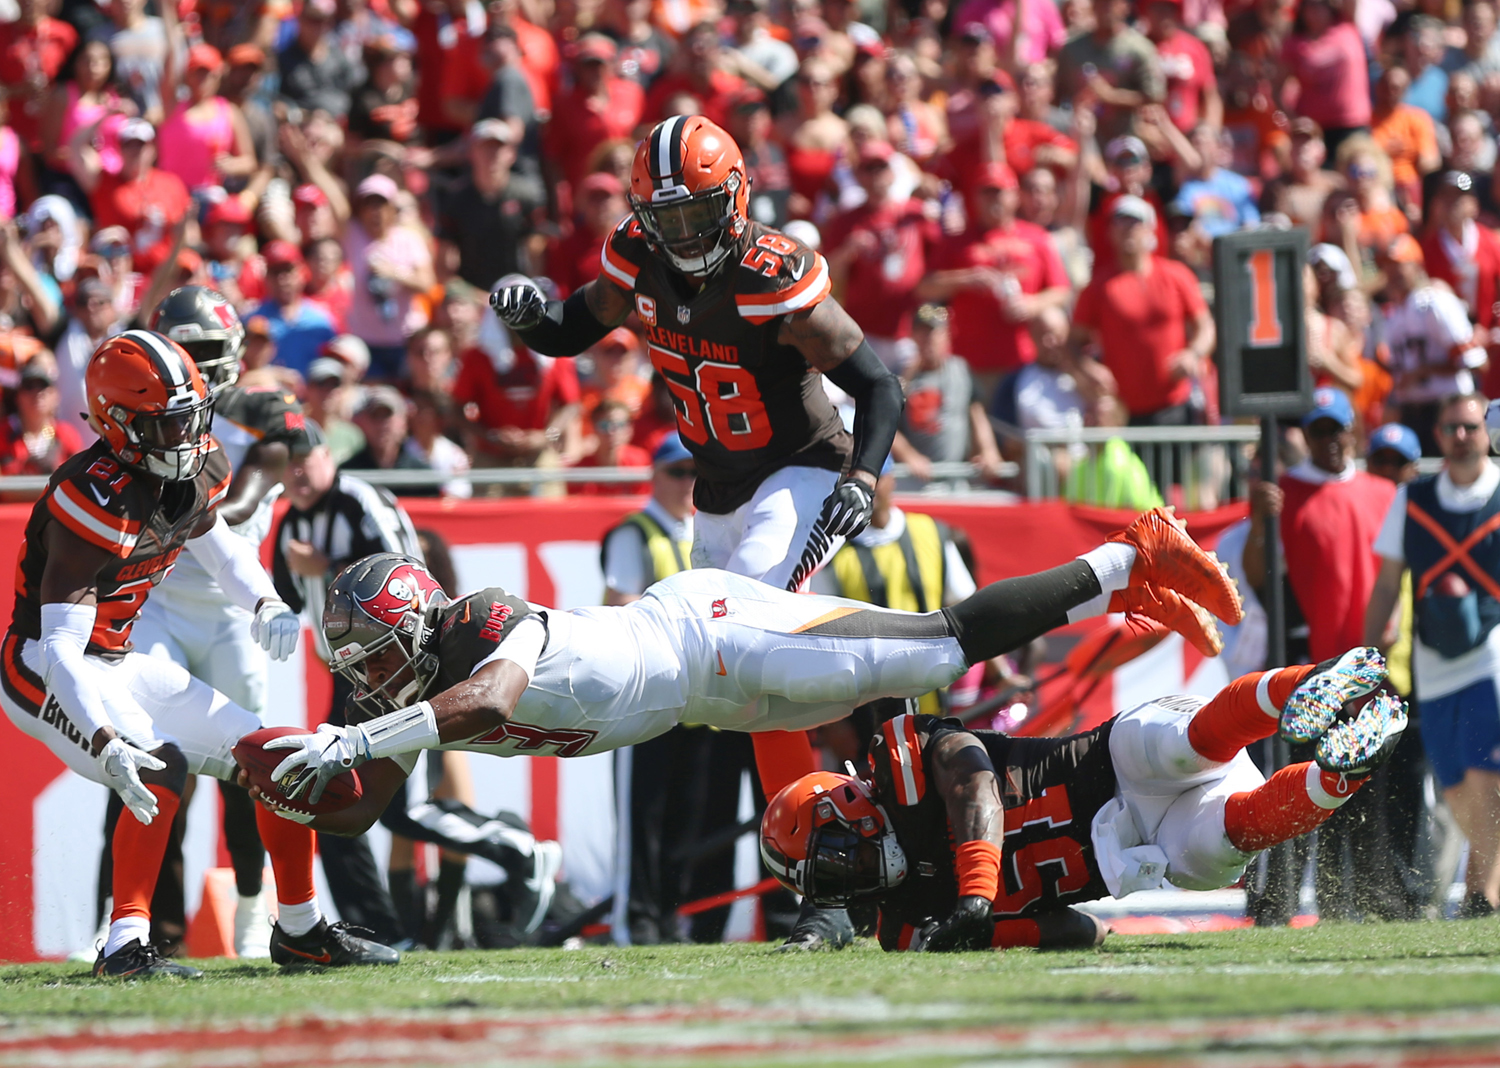 Tampa Bay Buccaneers quarterback Jameis Winston (3) dives for a touchdown over Cleveland Browns outside linebacker Jamie Collins (51) in the second quarter on Sunday in Tampa, Fla.